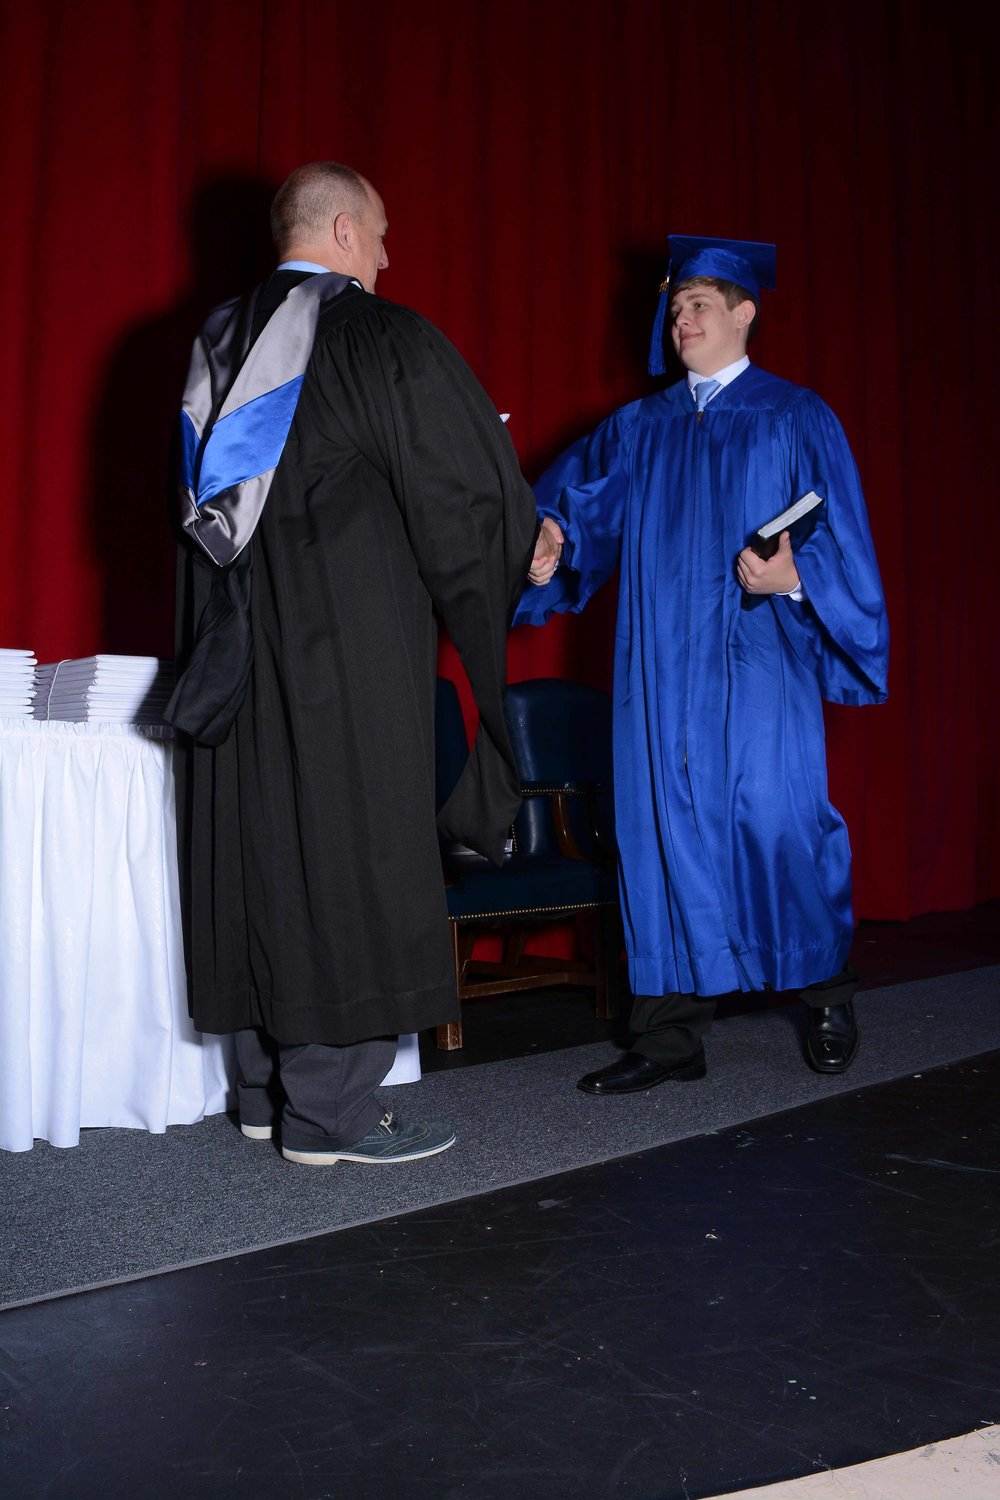 May14 Commencement03.jpg